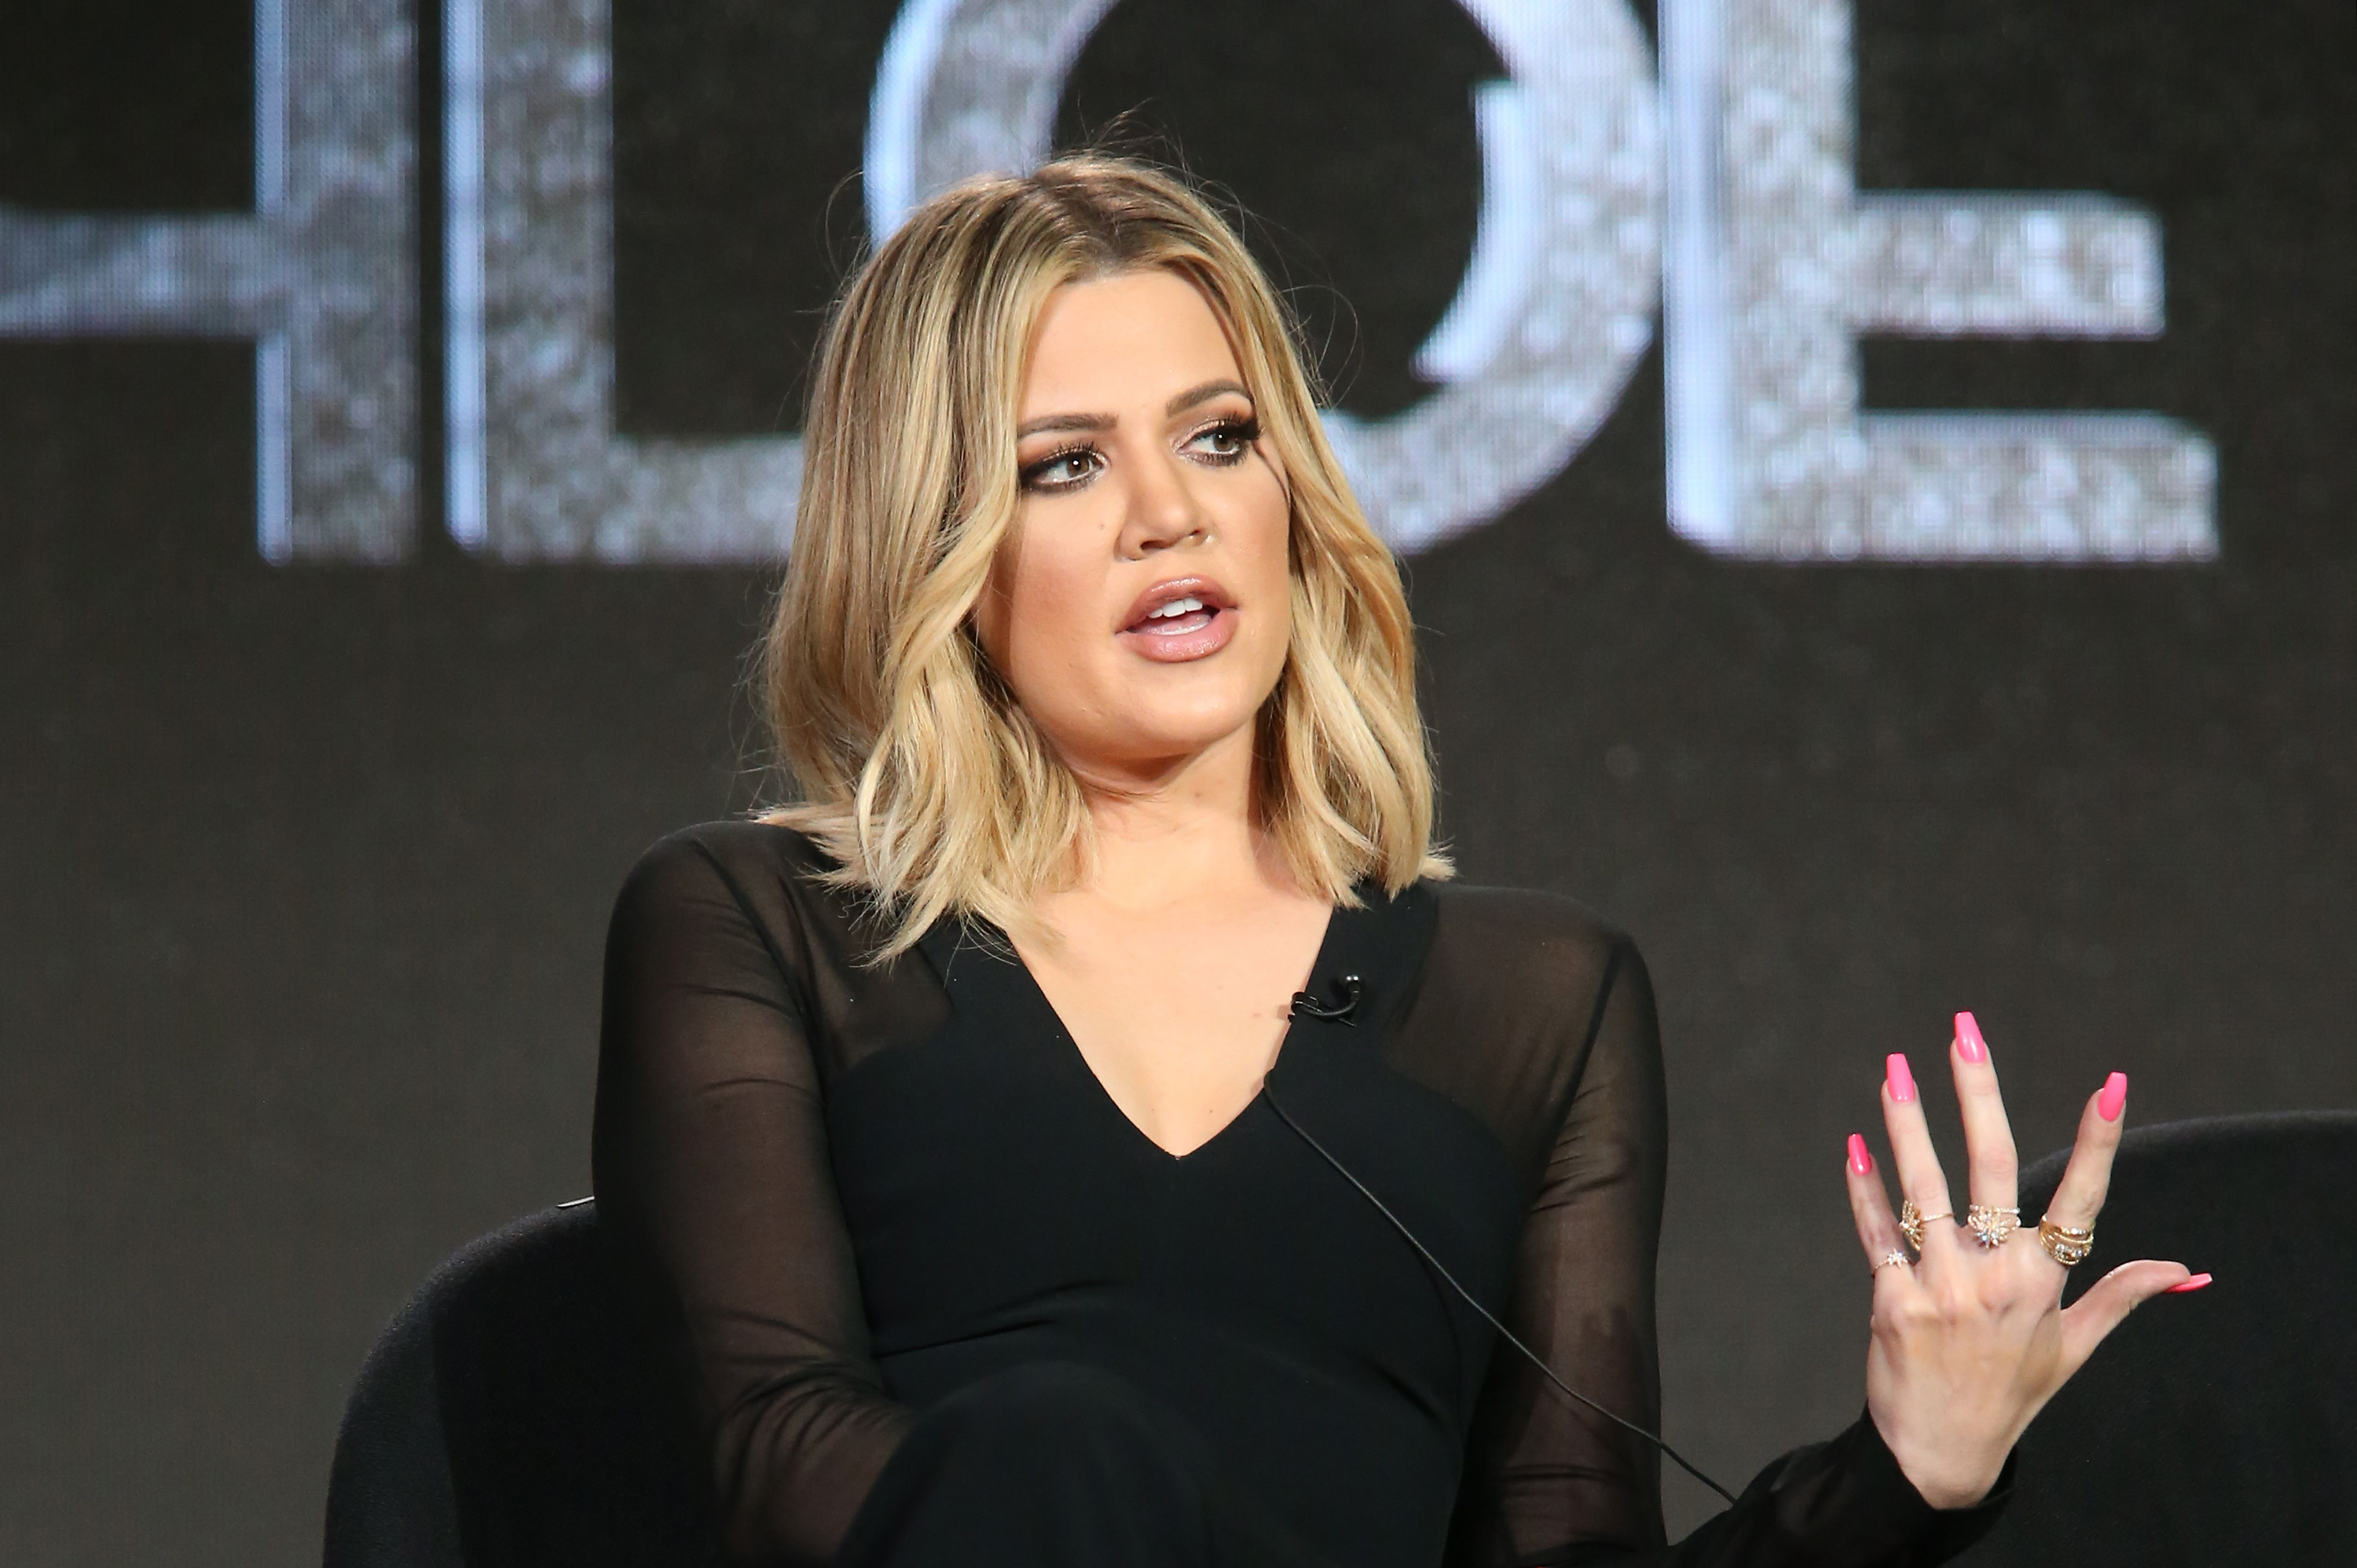 Craig Piligian, resident & CEO of Pilgrim Media Group and executive producer, and Khloe Kardashian, executive producer, speak onstage during FYI - Kocktails with Khloe panel as part of the A+E Network portion of This is Cable 2016 Television Critics Association Press Tour at Langham Hotel on January 6, 2016 in Pasadena, California.